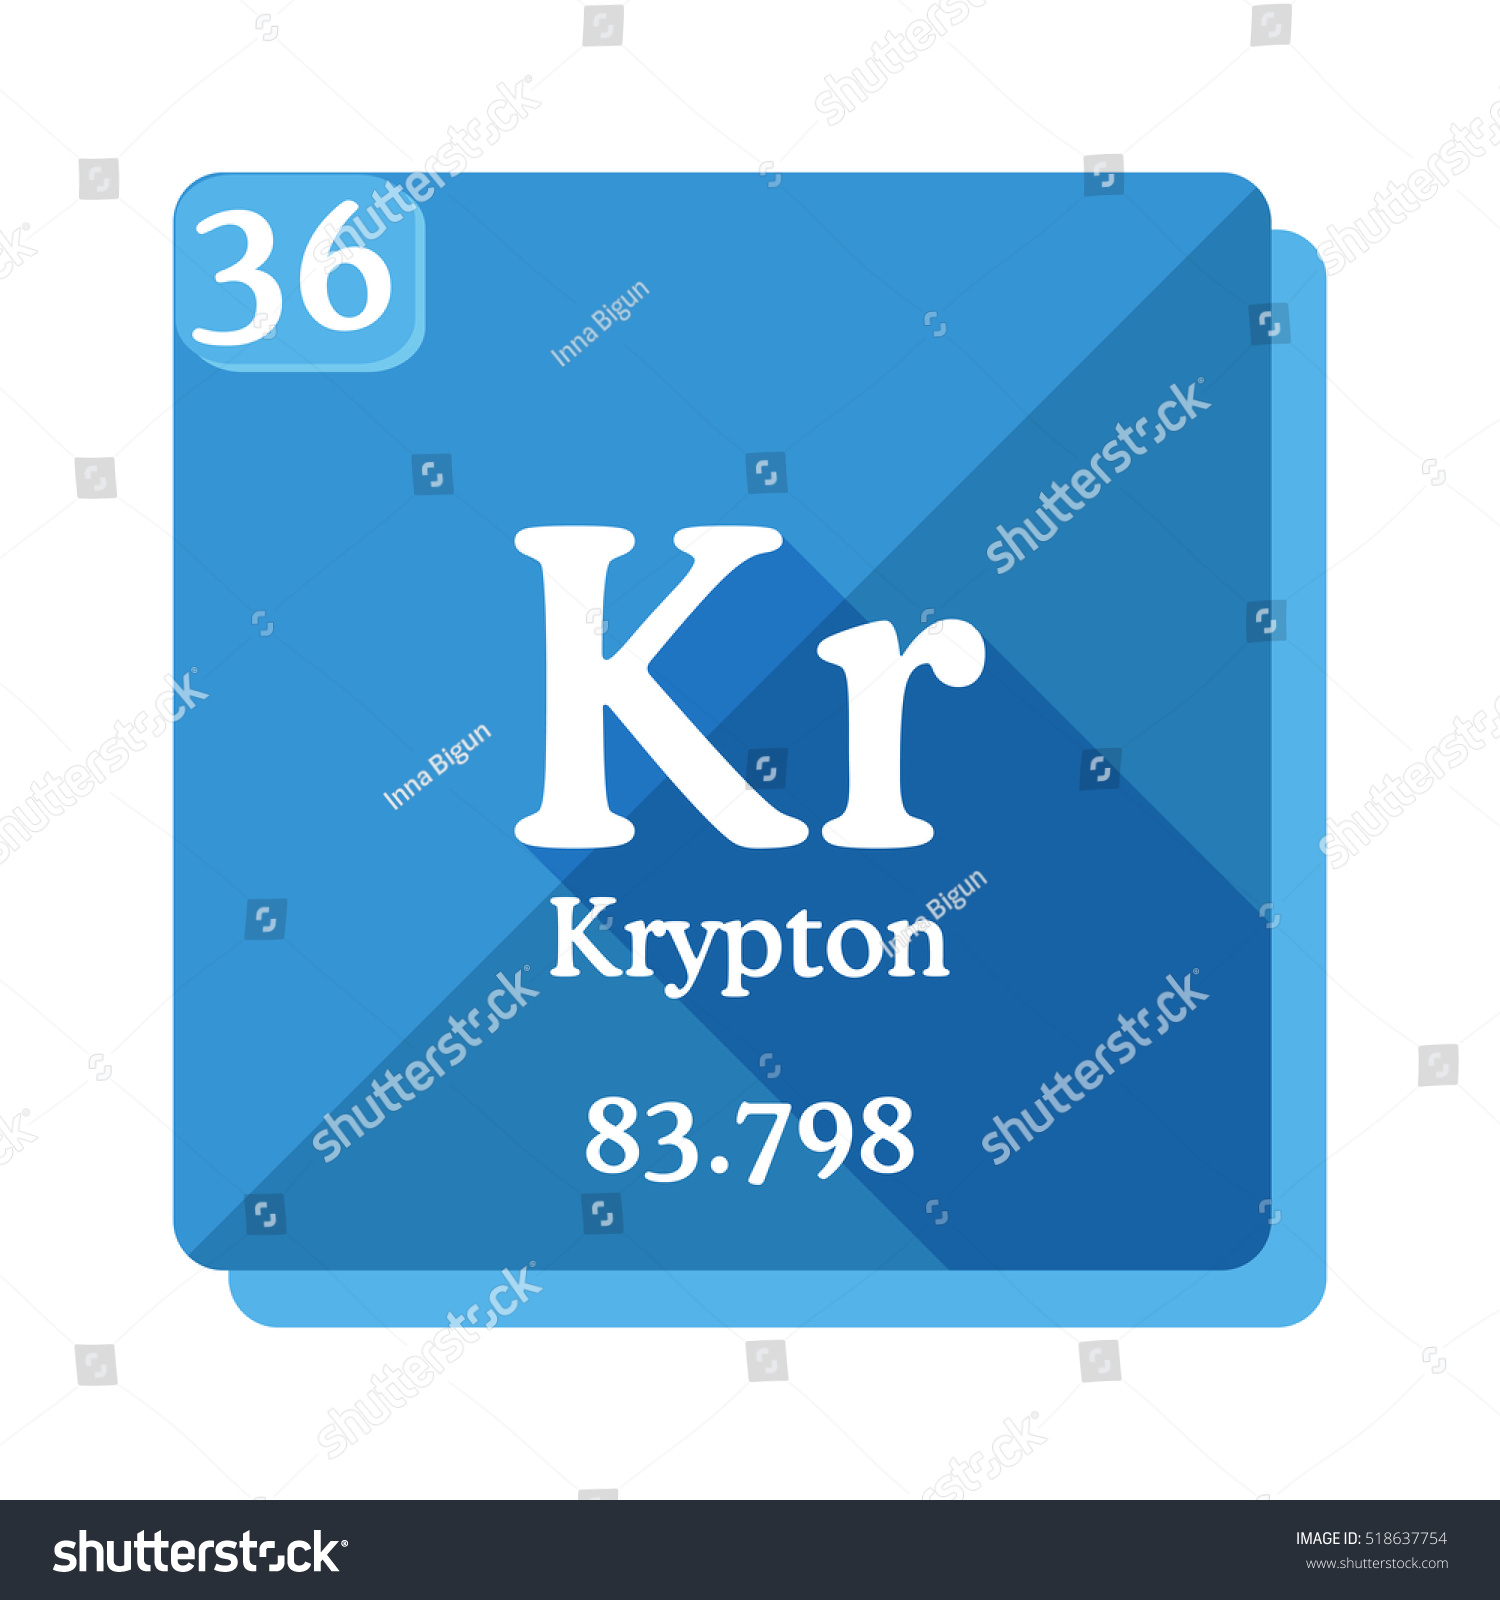 Kryptonite element periodic table image collections periodic krypton kr element periodic table flat stock vector 518637754 krypton kr element of the periodic table gamestrikefo Gallery